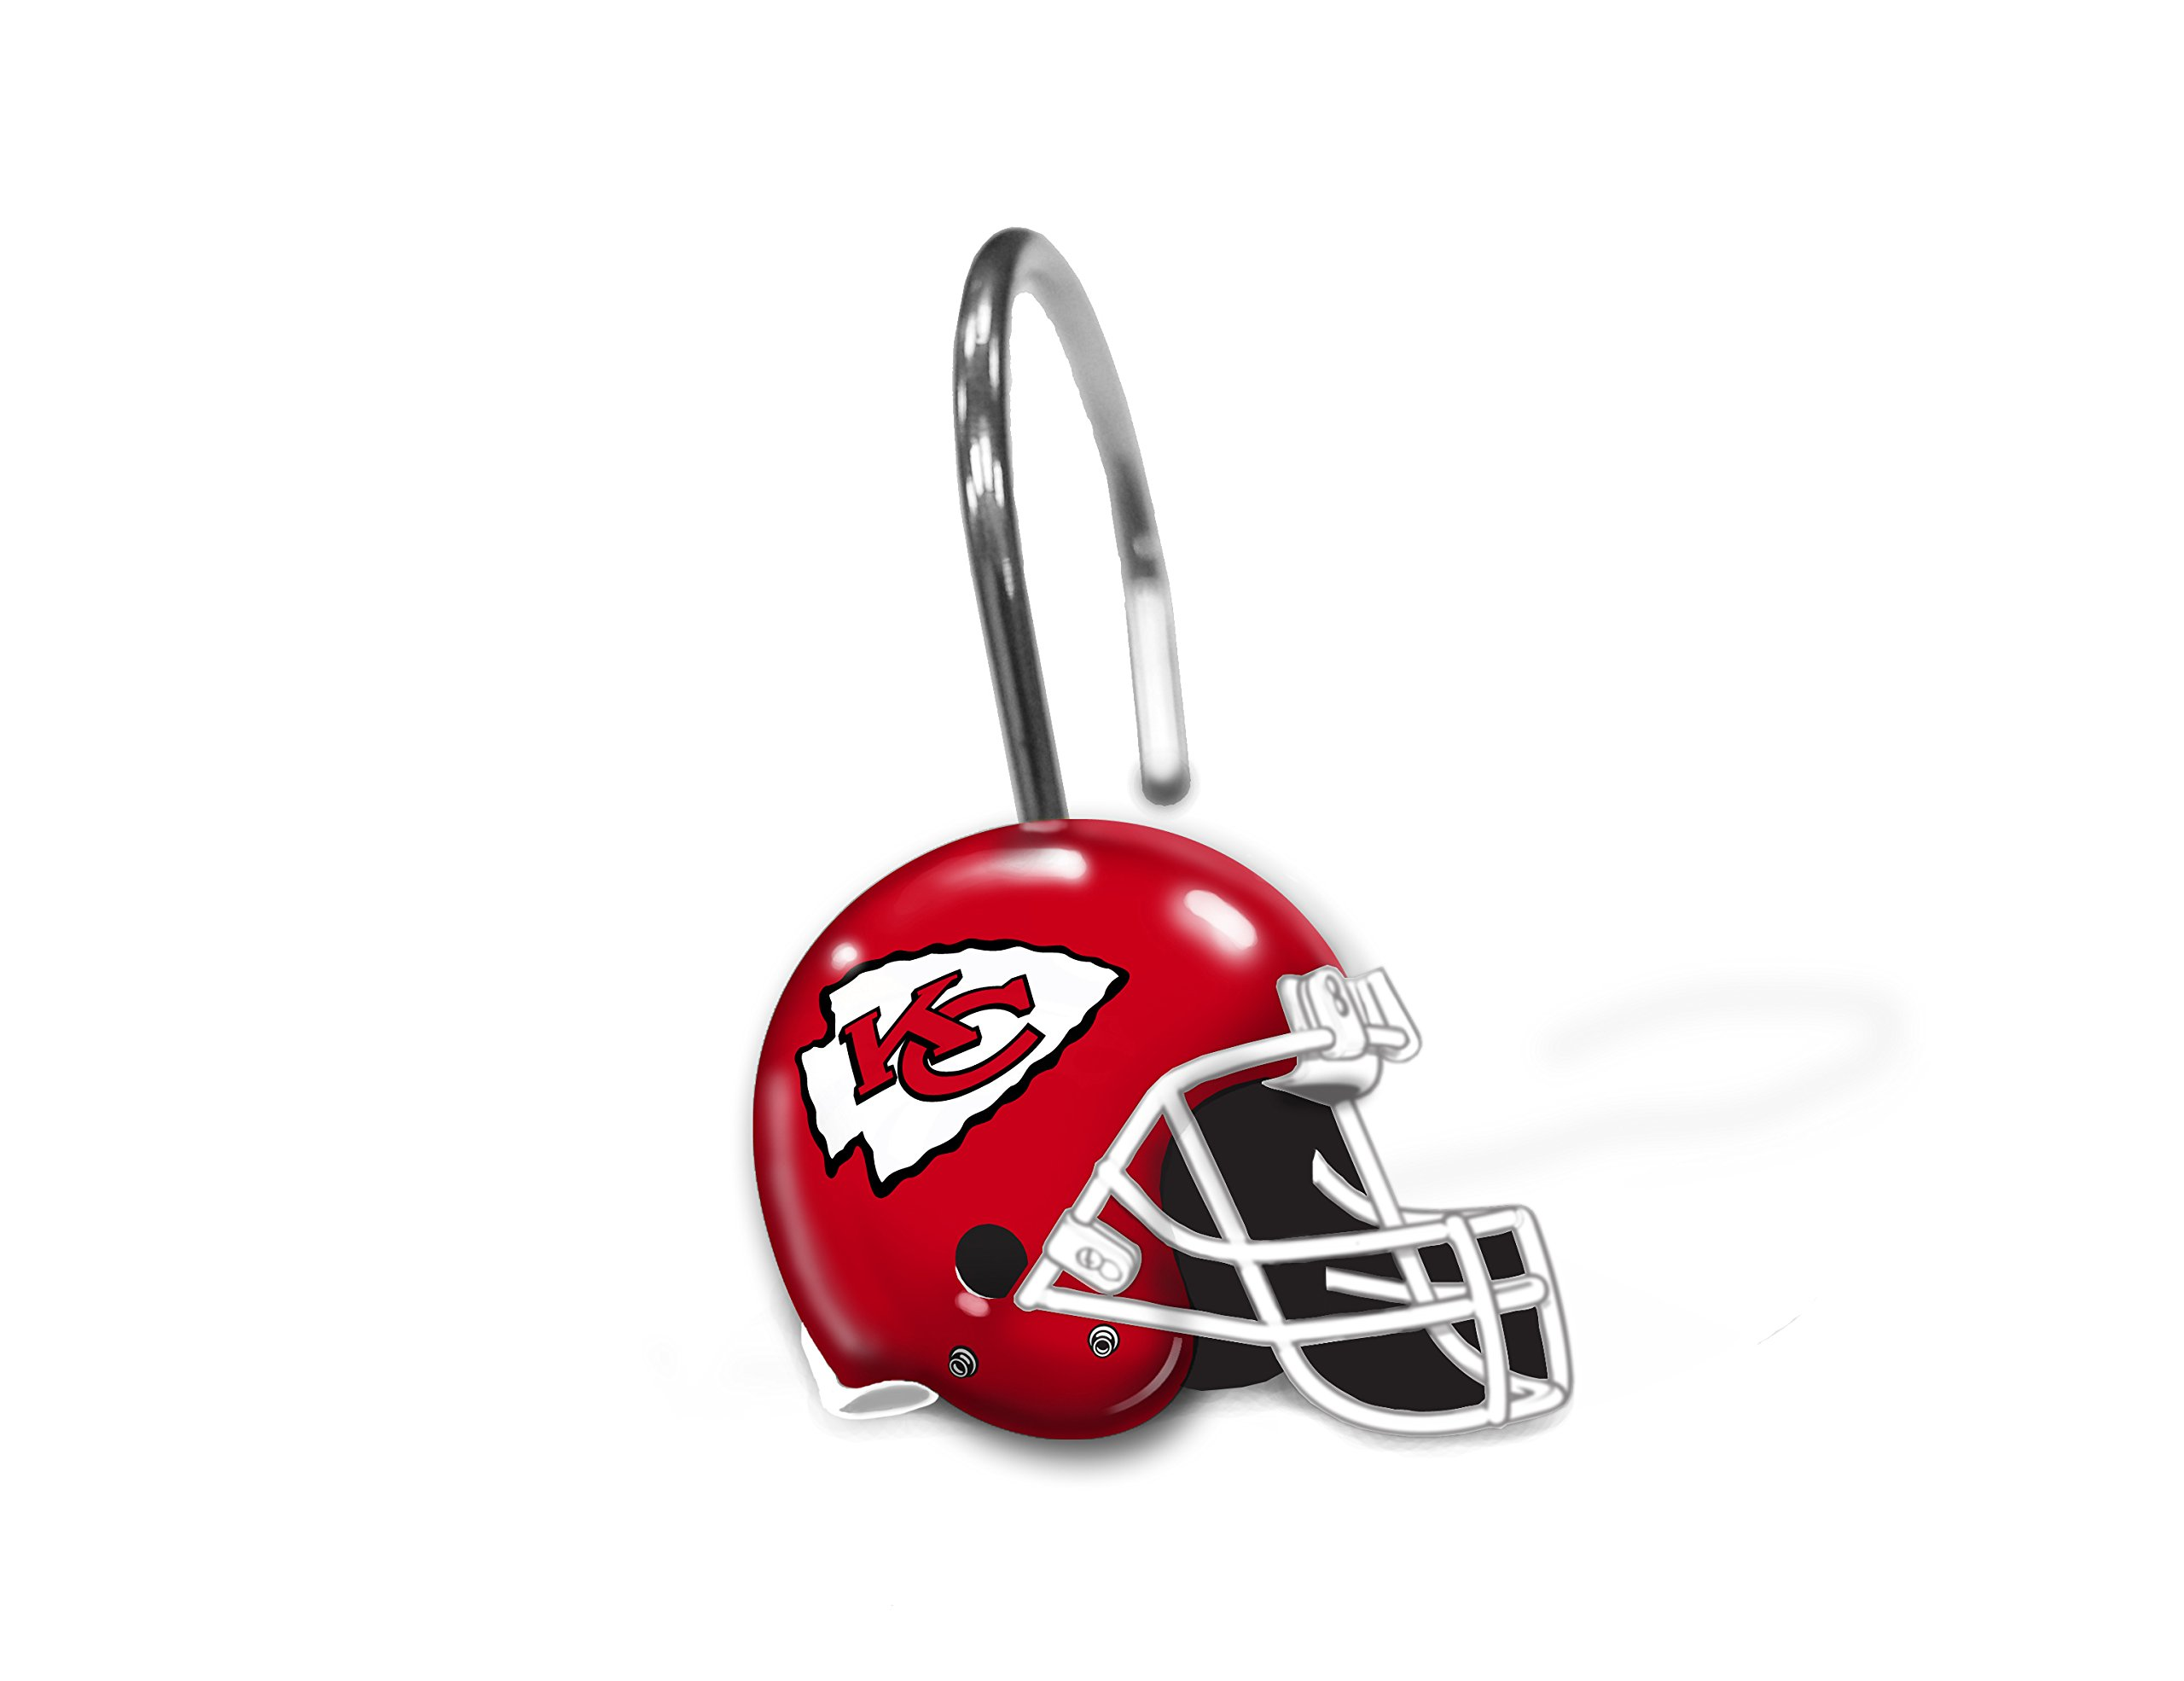 NFL Helmet Shower Curtain Rings NFL Team: Kansas City Chiefs